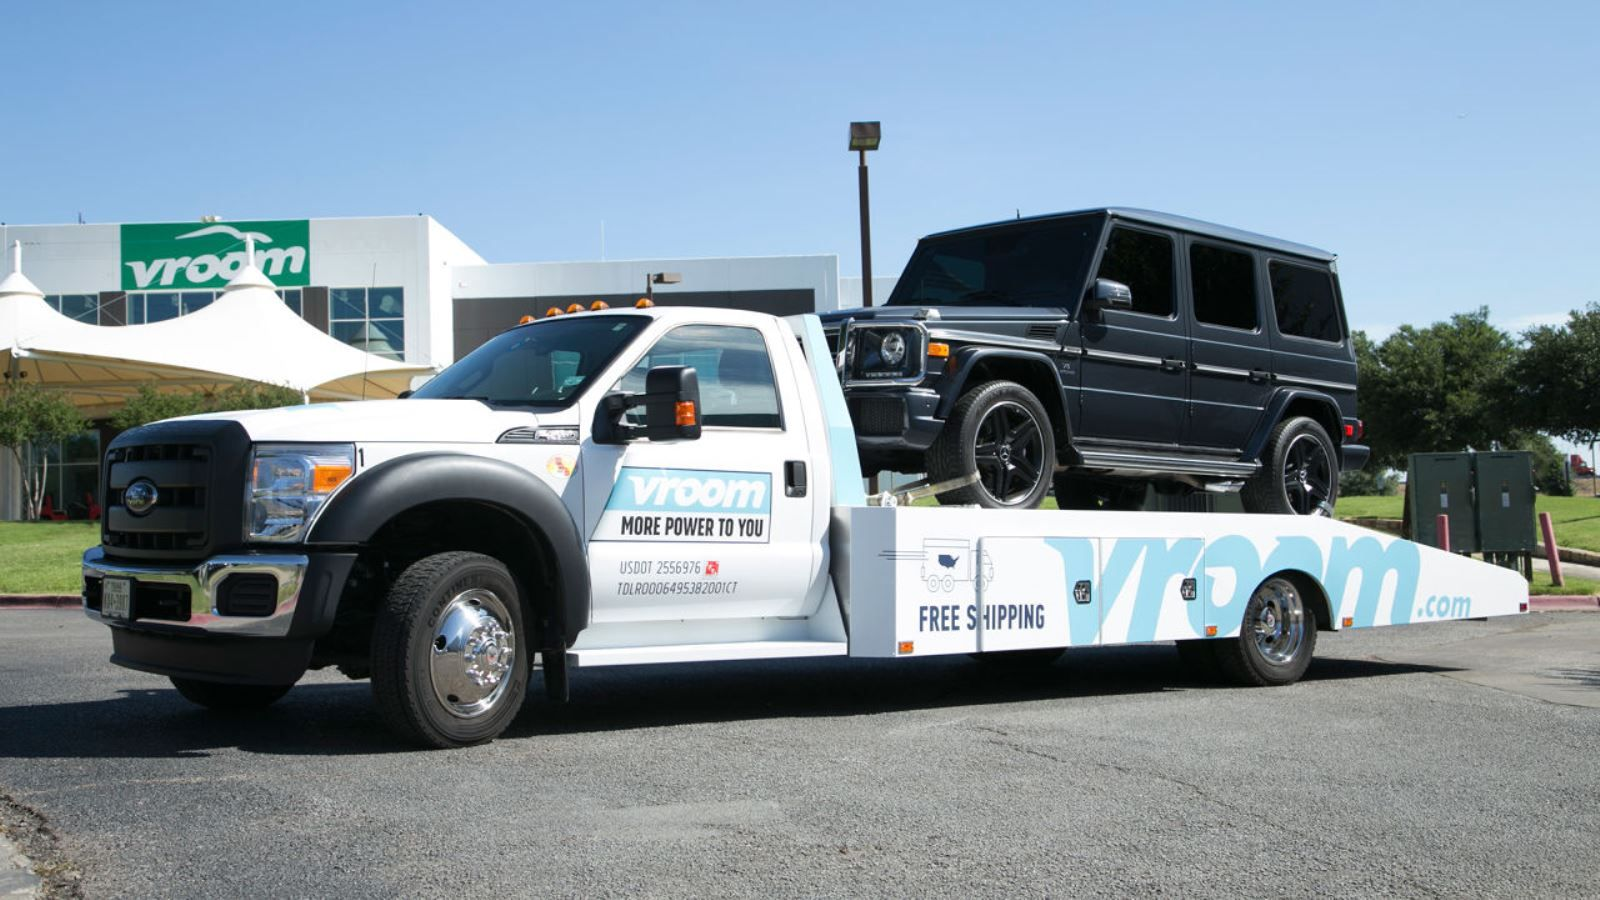 A Vroom car carrier delivering a vehicle. Photo: courtesy